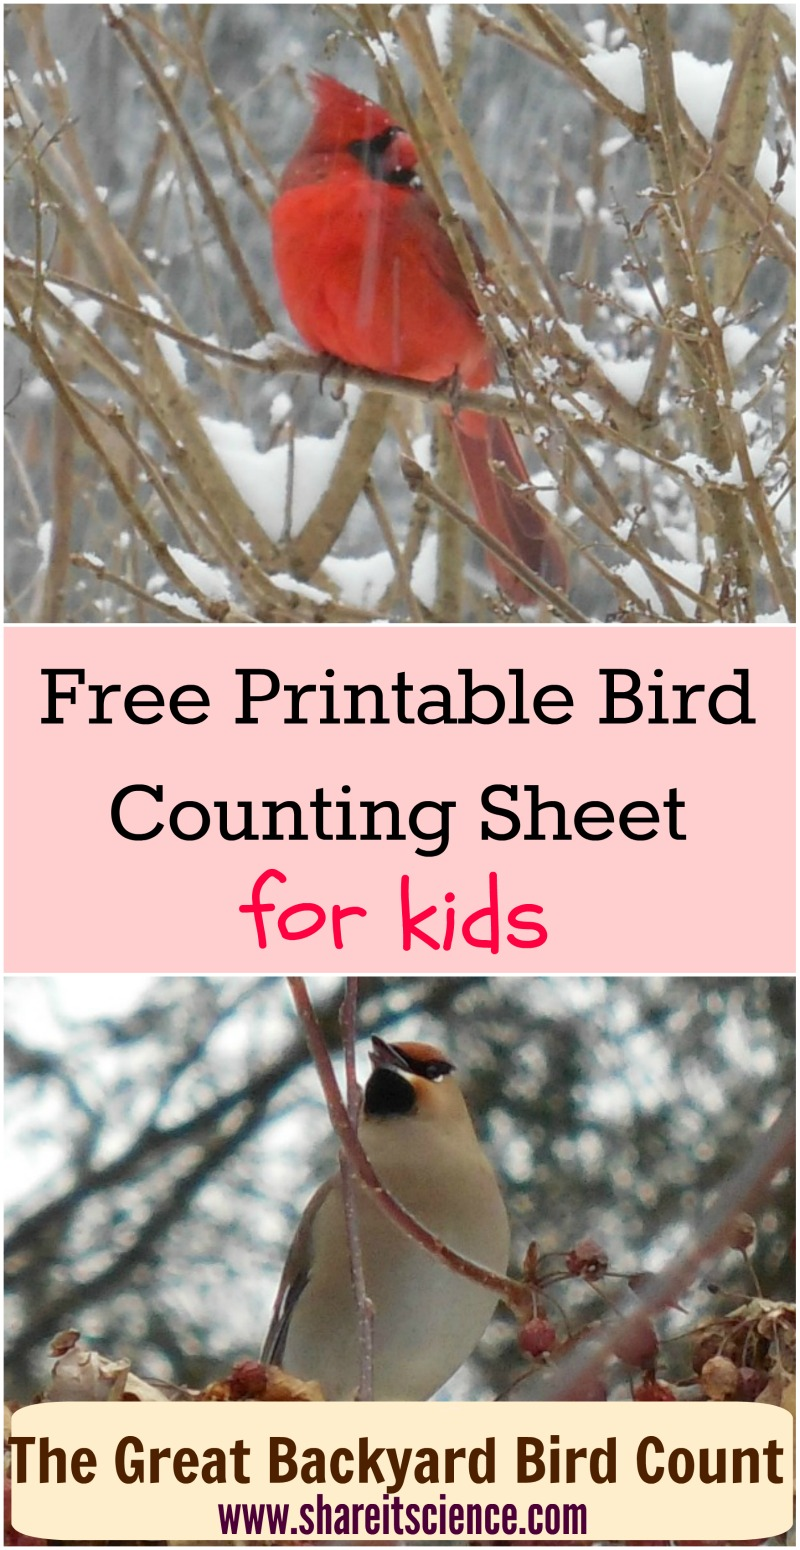 share it science free bird counting printable great backyard